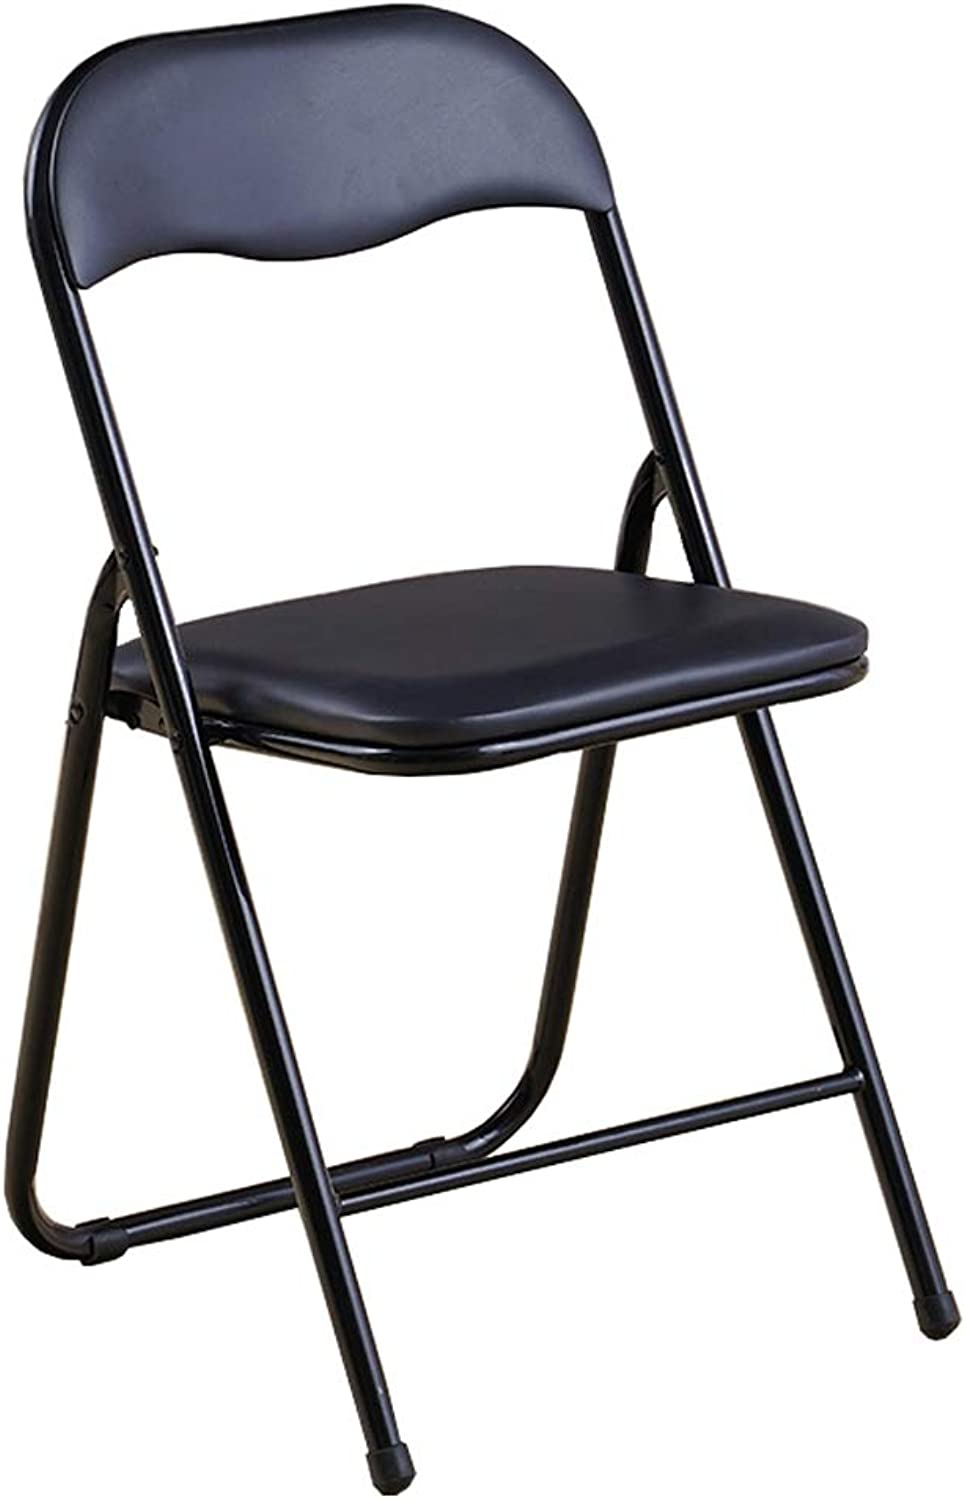 Training Chair Home Folding Simple Chair Office Chair Conference Chair